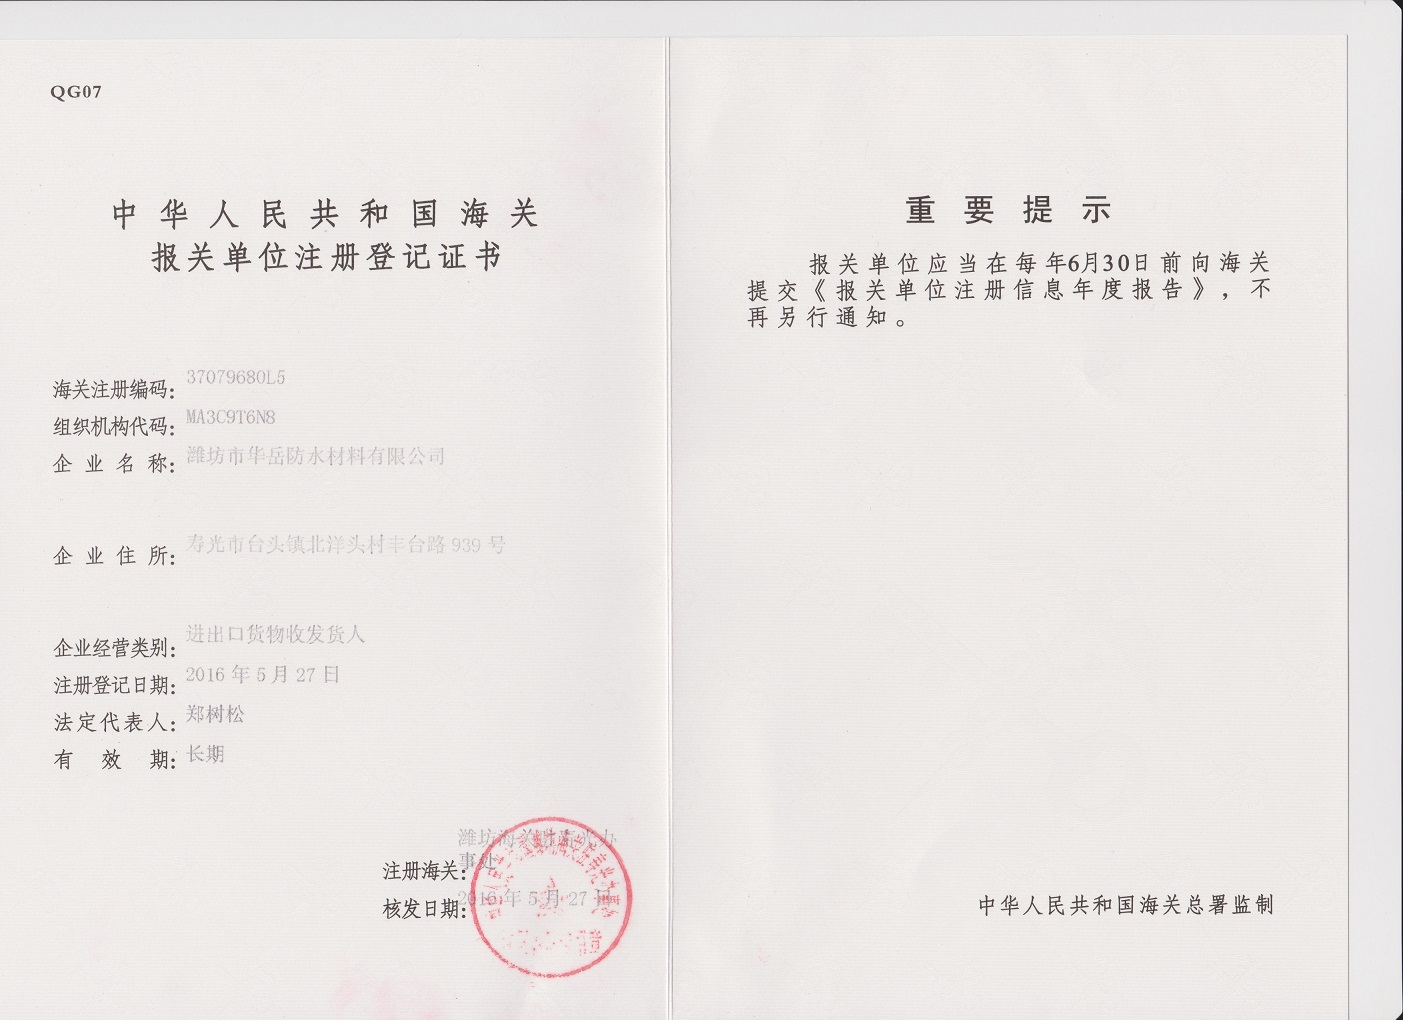 Registration certificate of the People's Republic of China customs declaration units